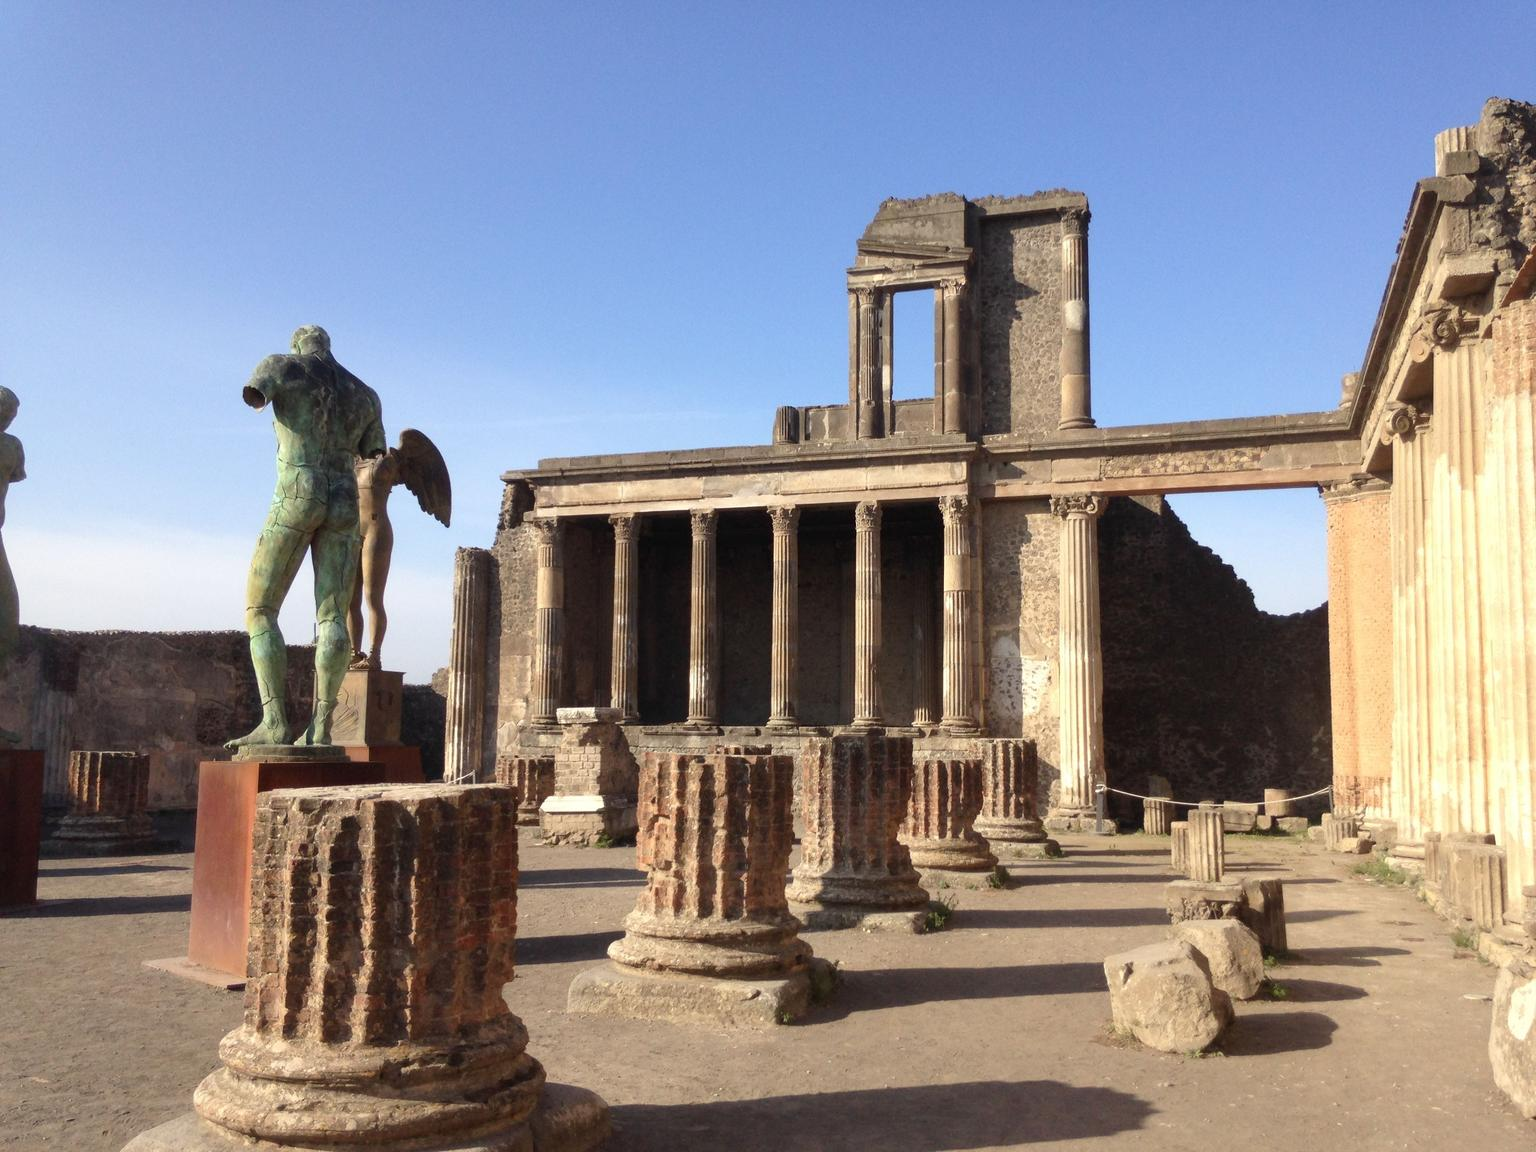 MORE PHOTOS, Skip-the-line Small-Group Pompeii Tour with a Local Archaeology Expert Guide